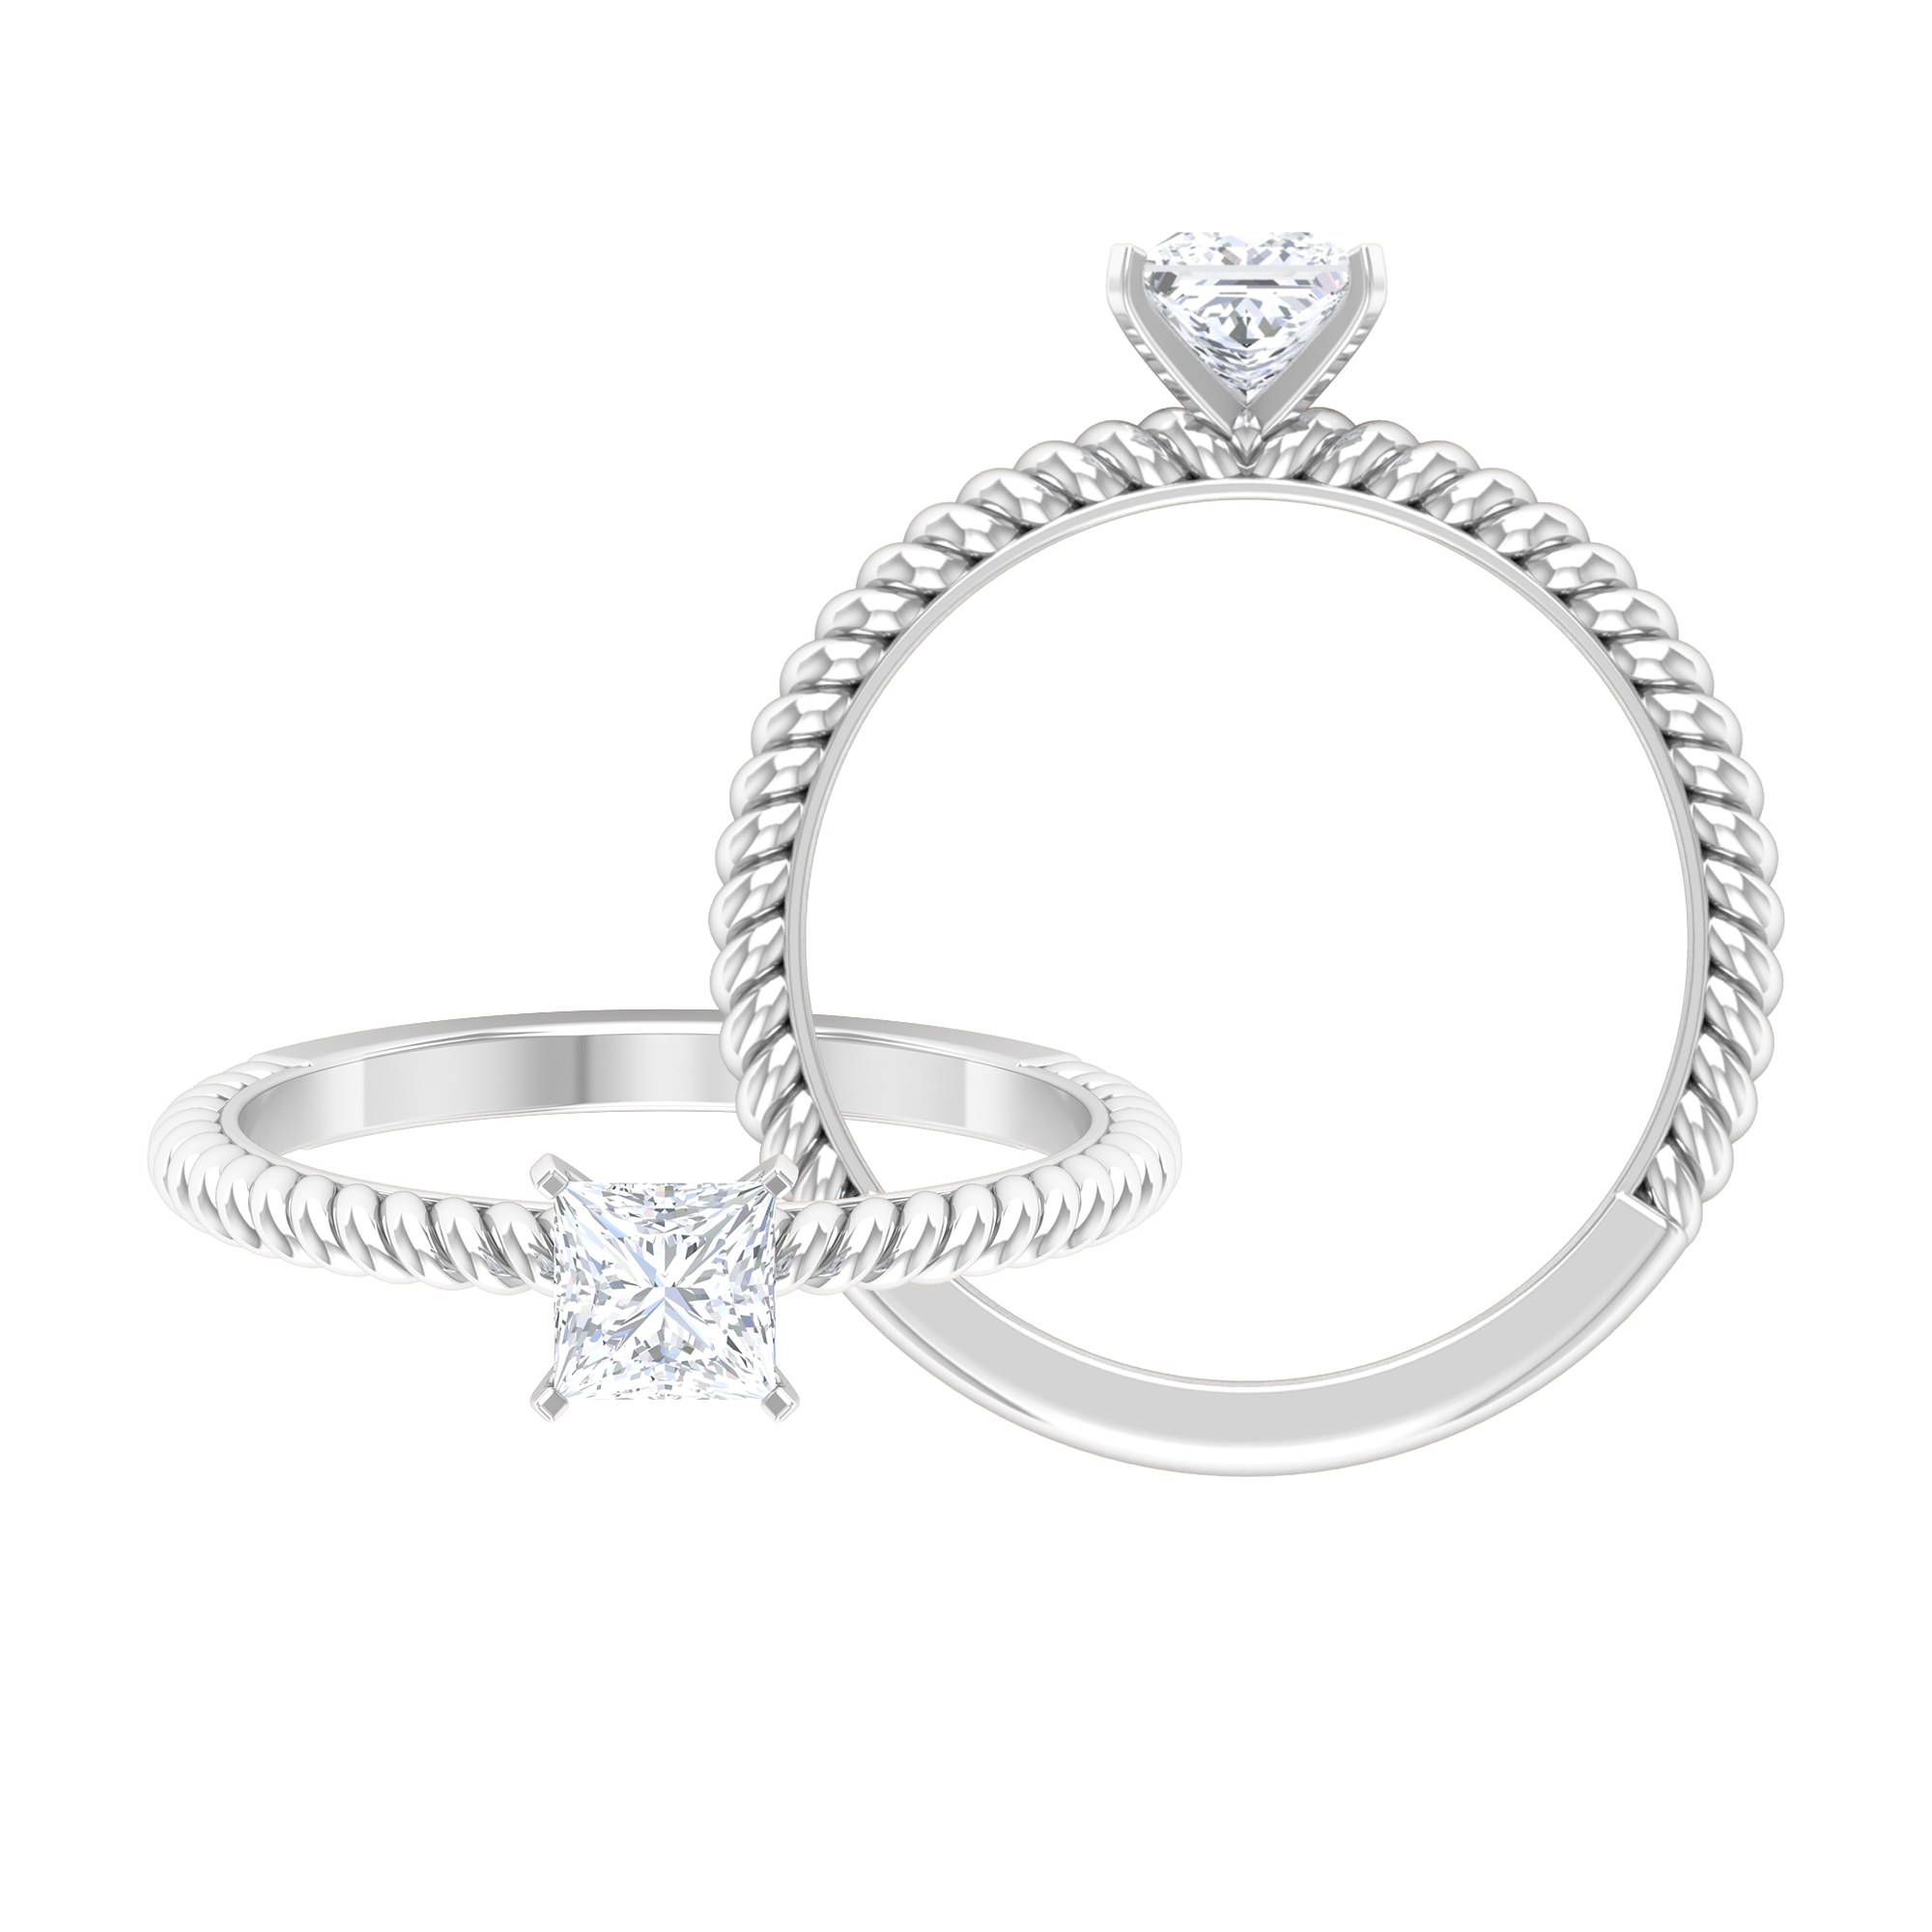 1/2 CT Diamond Solitaire Peg Head Set Ring with Rope Frame